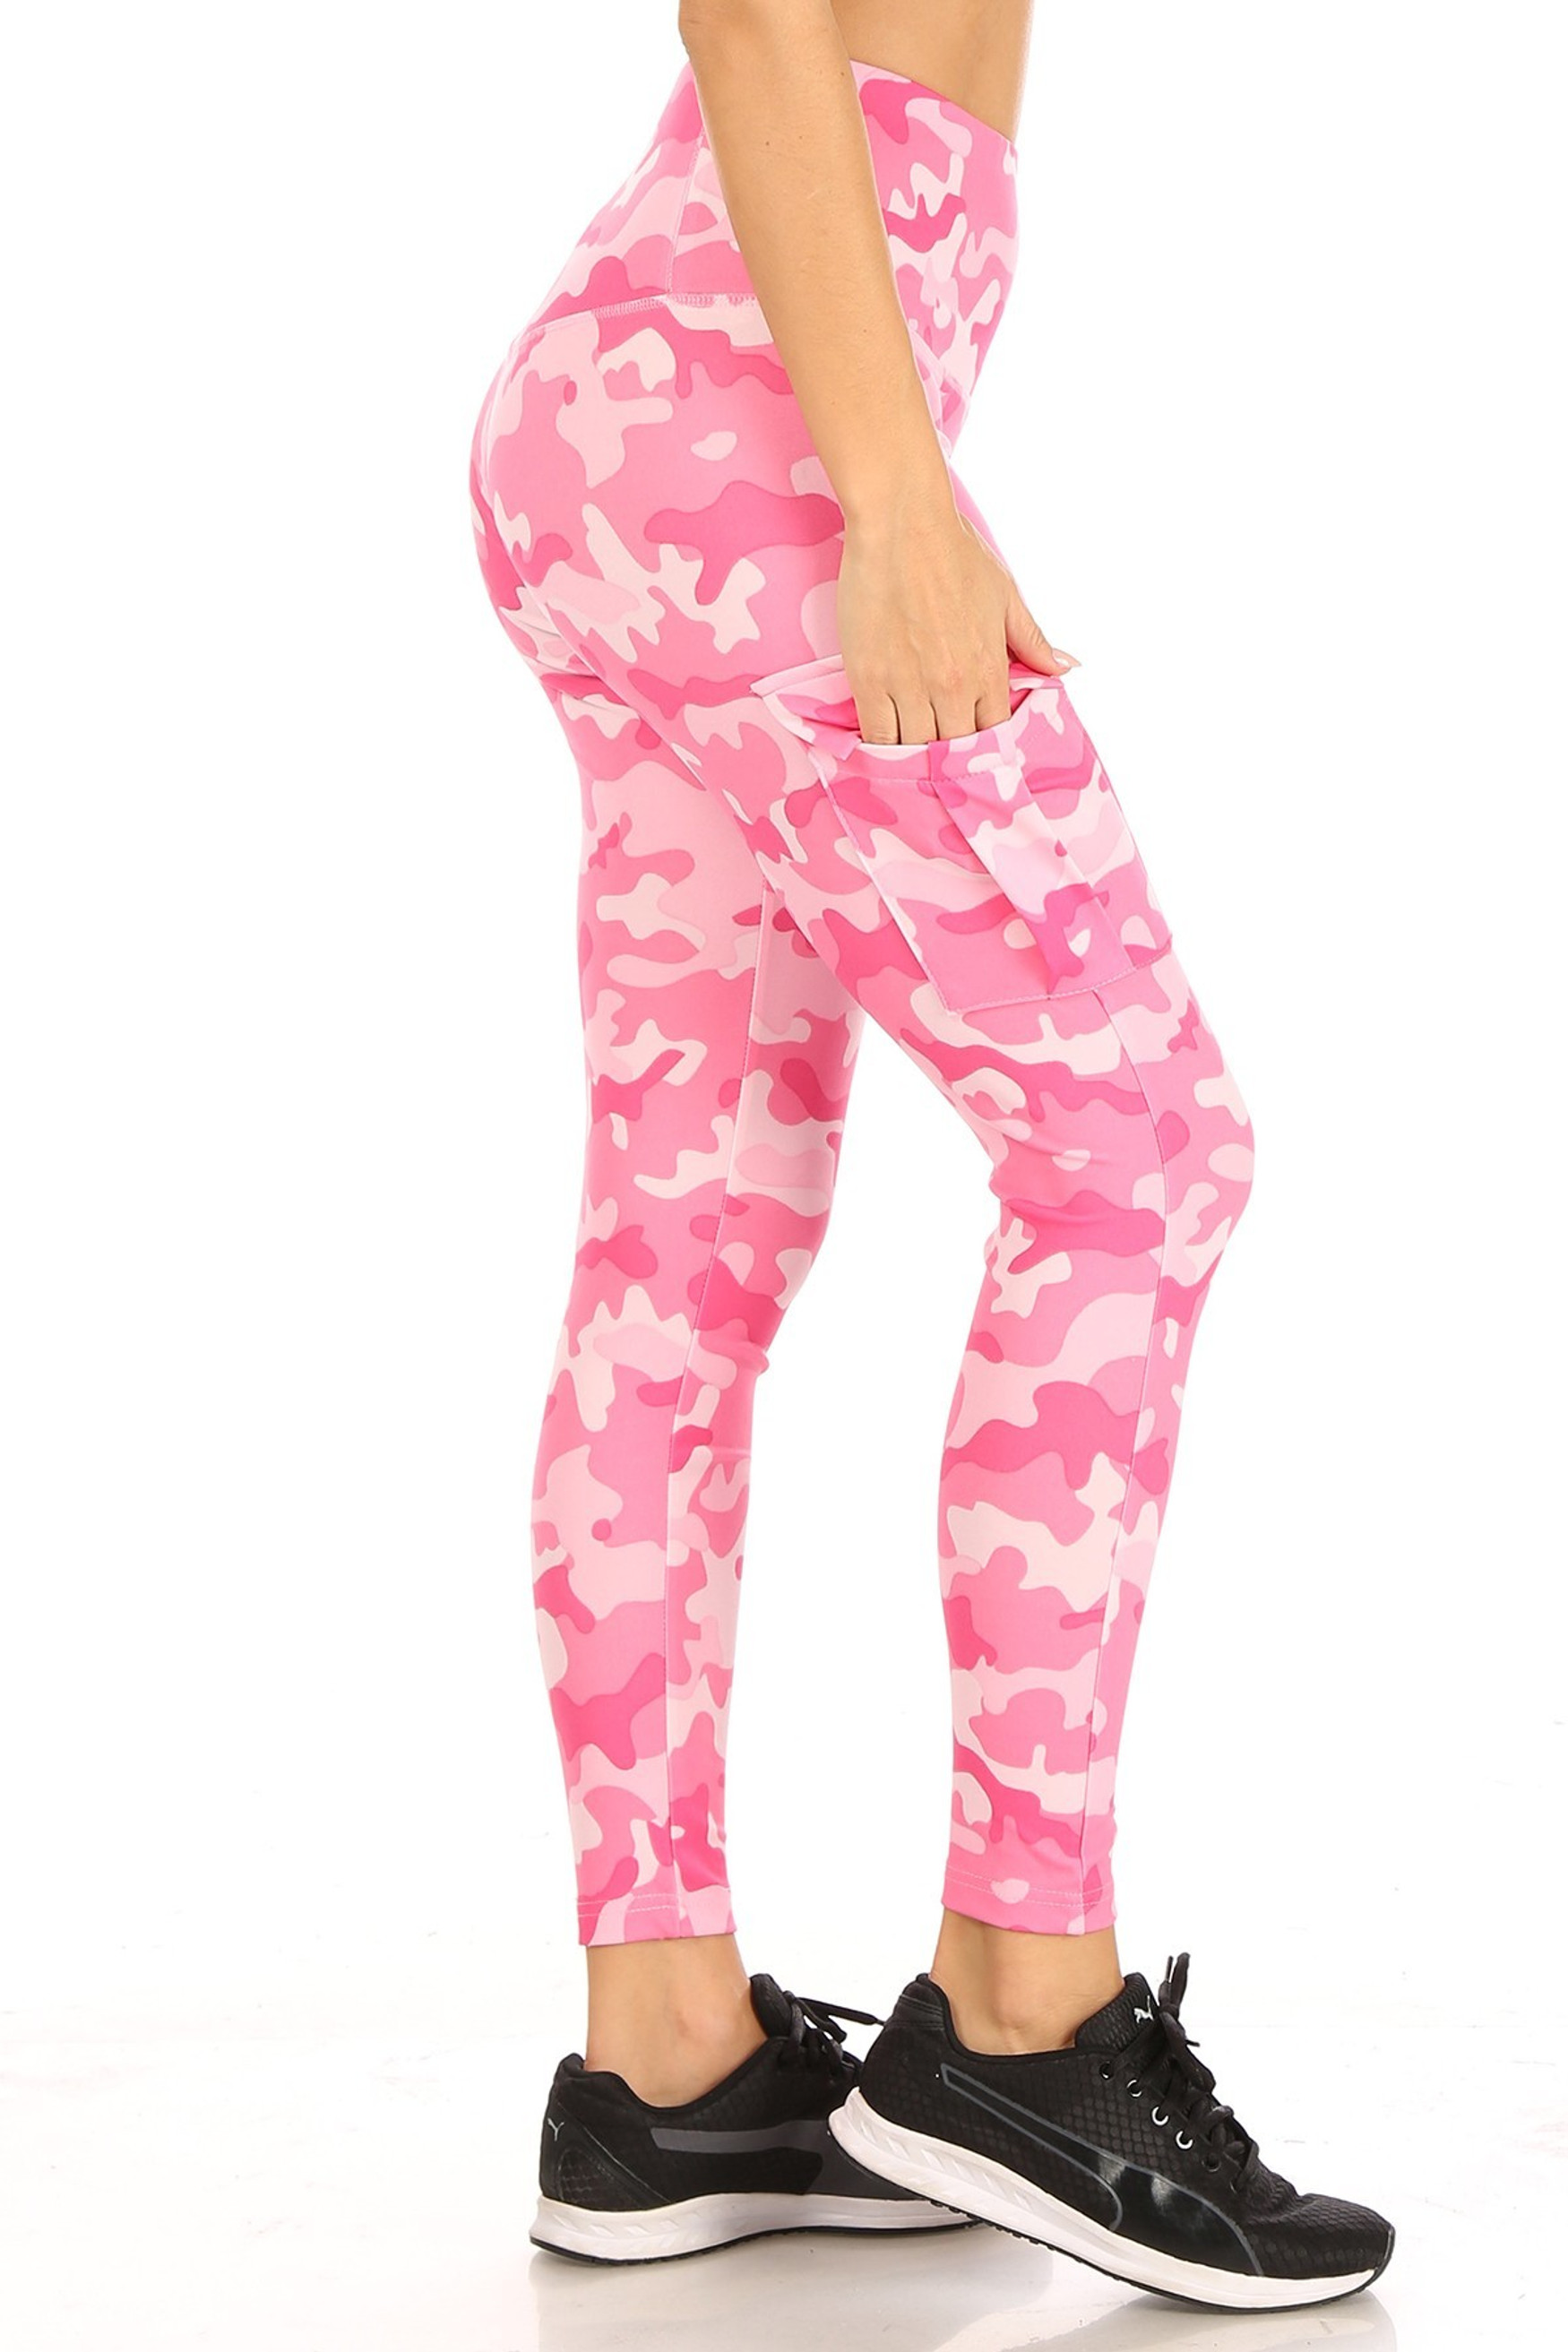 Right side Cotton Candy Camouflage Sport Leggings with Cargo Pocket